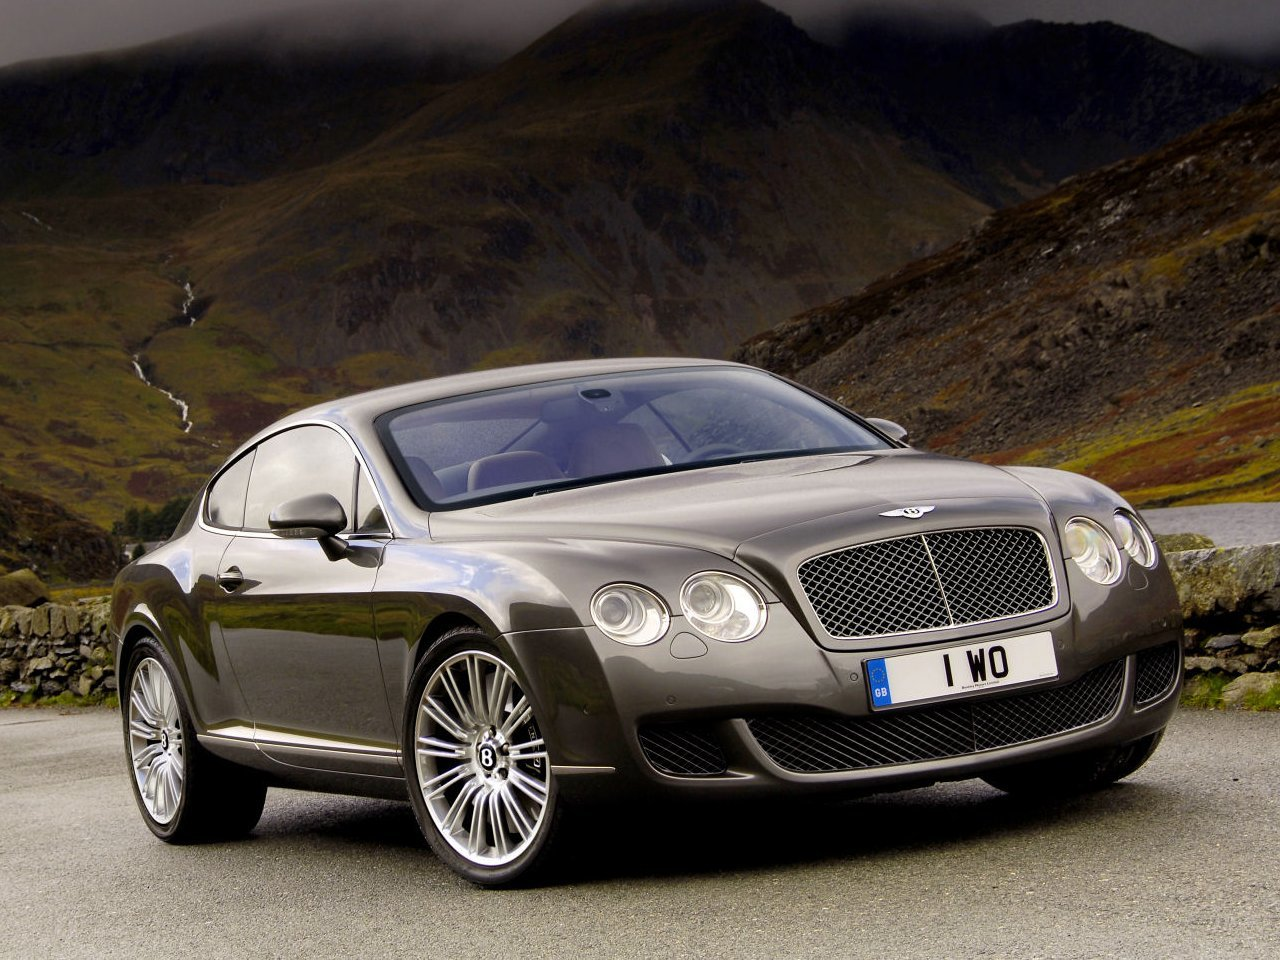 Latest Car New Models Wallpapers Bentley Continental Gt Free Download